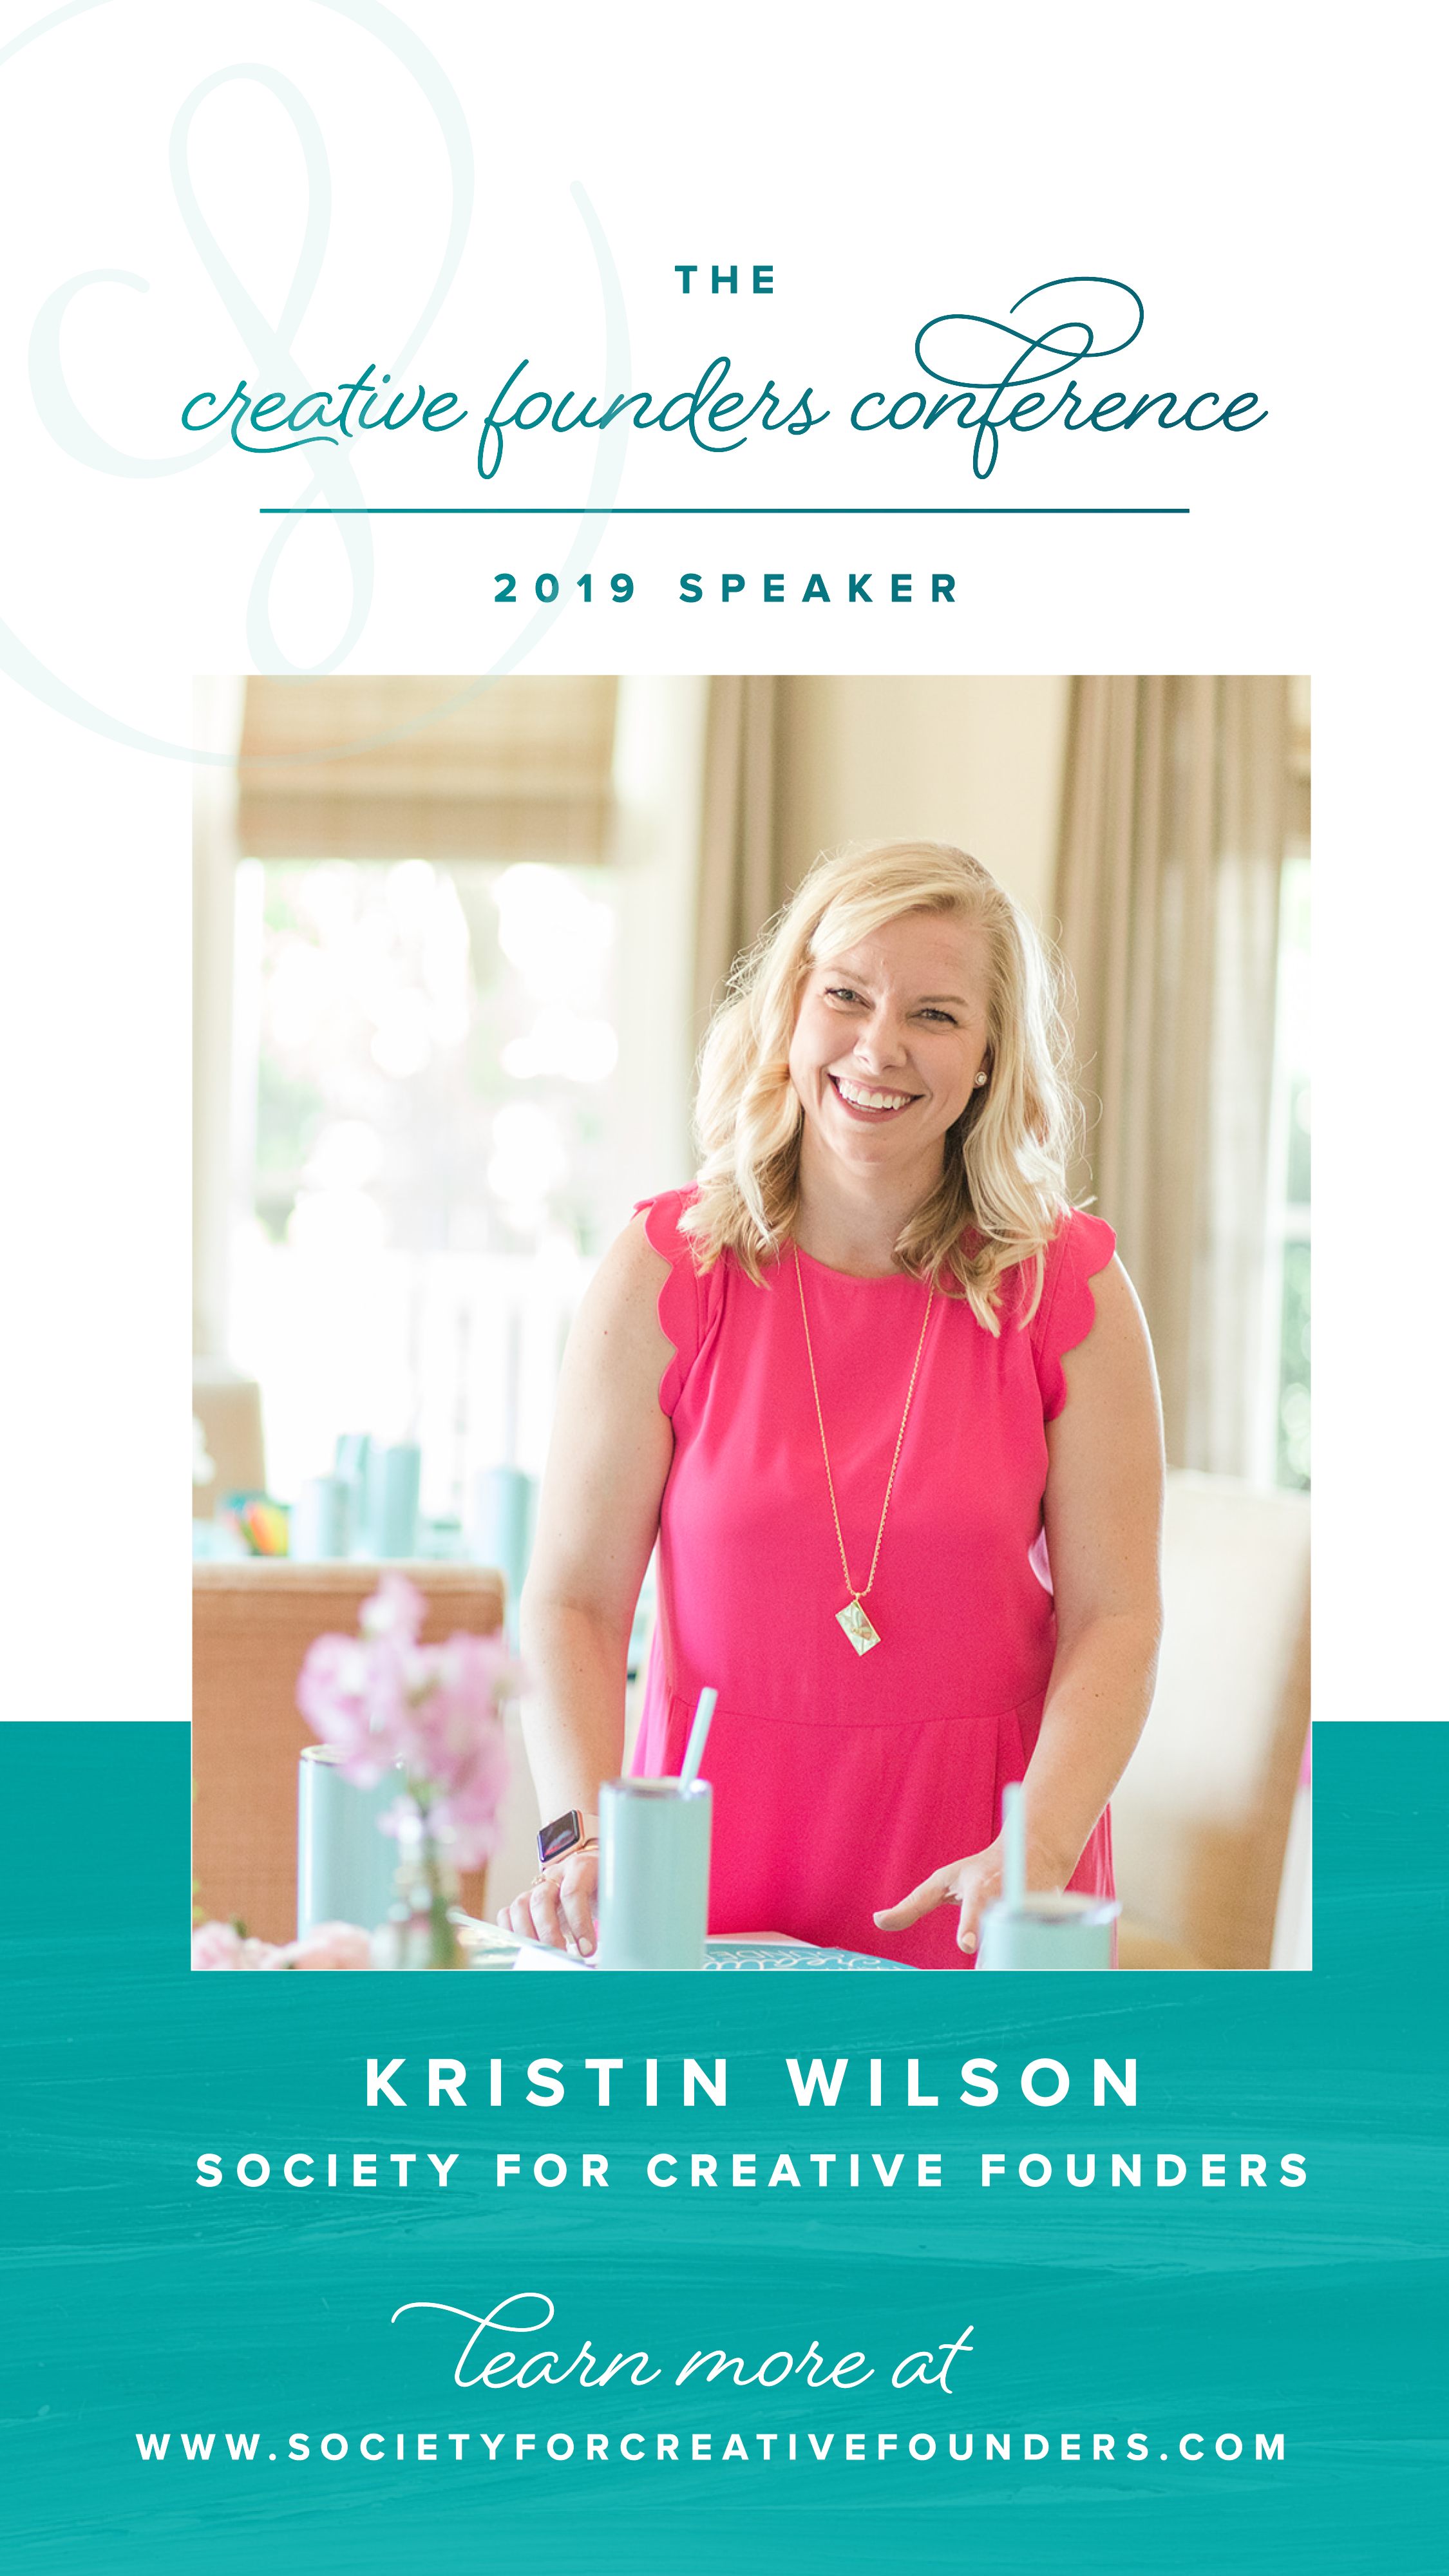 Kristin Wilson - Society for Creative Founders 2019 Speaker